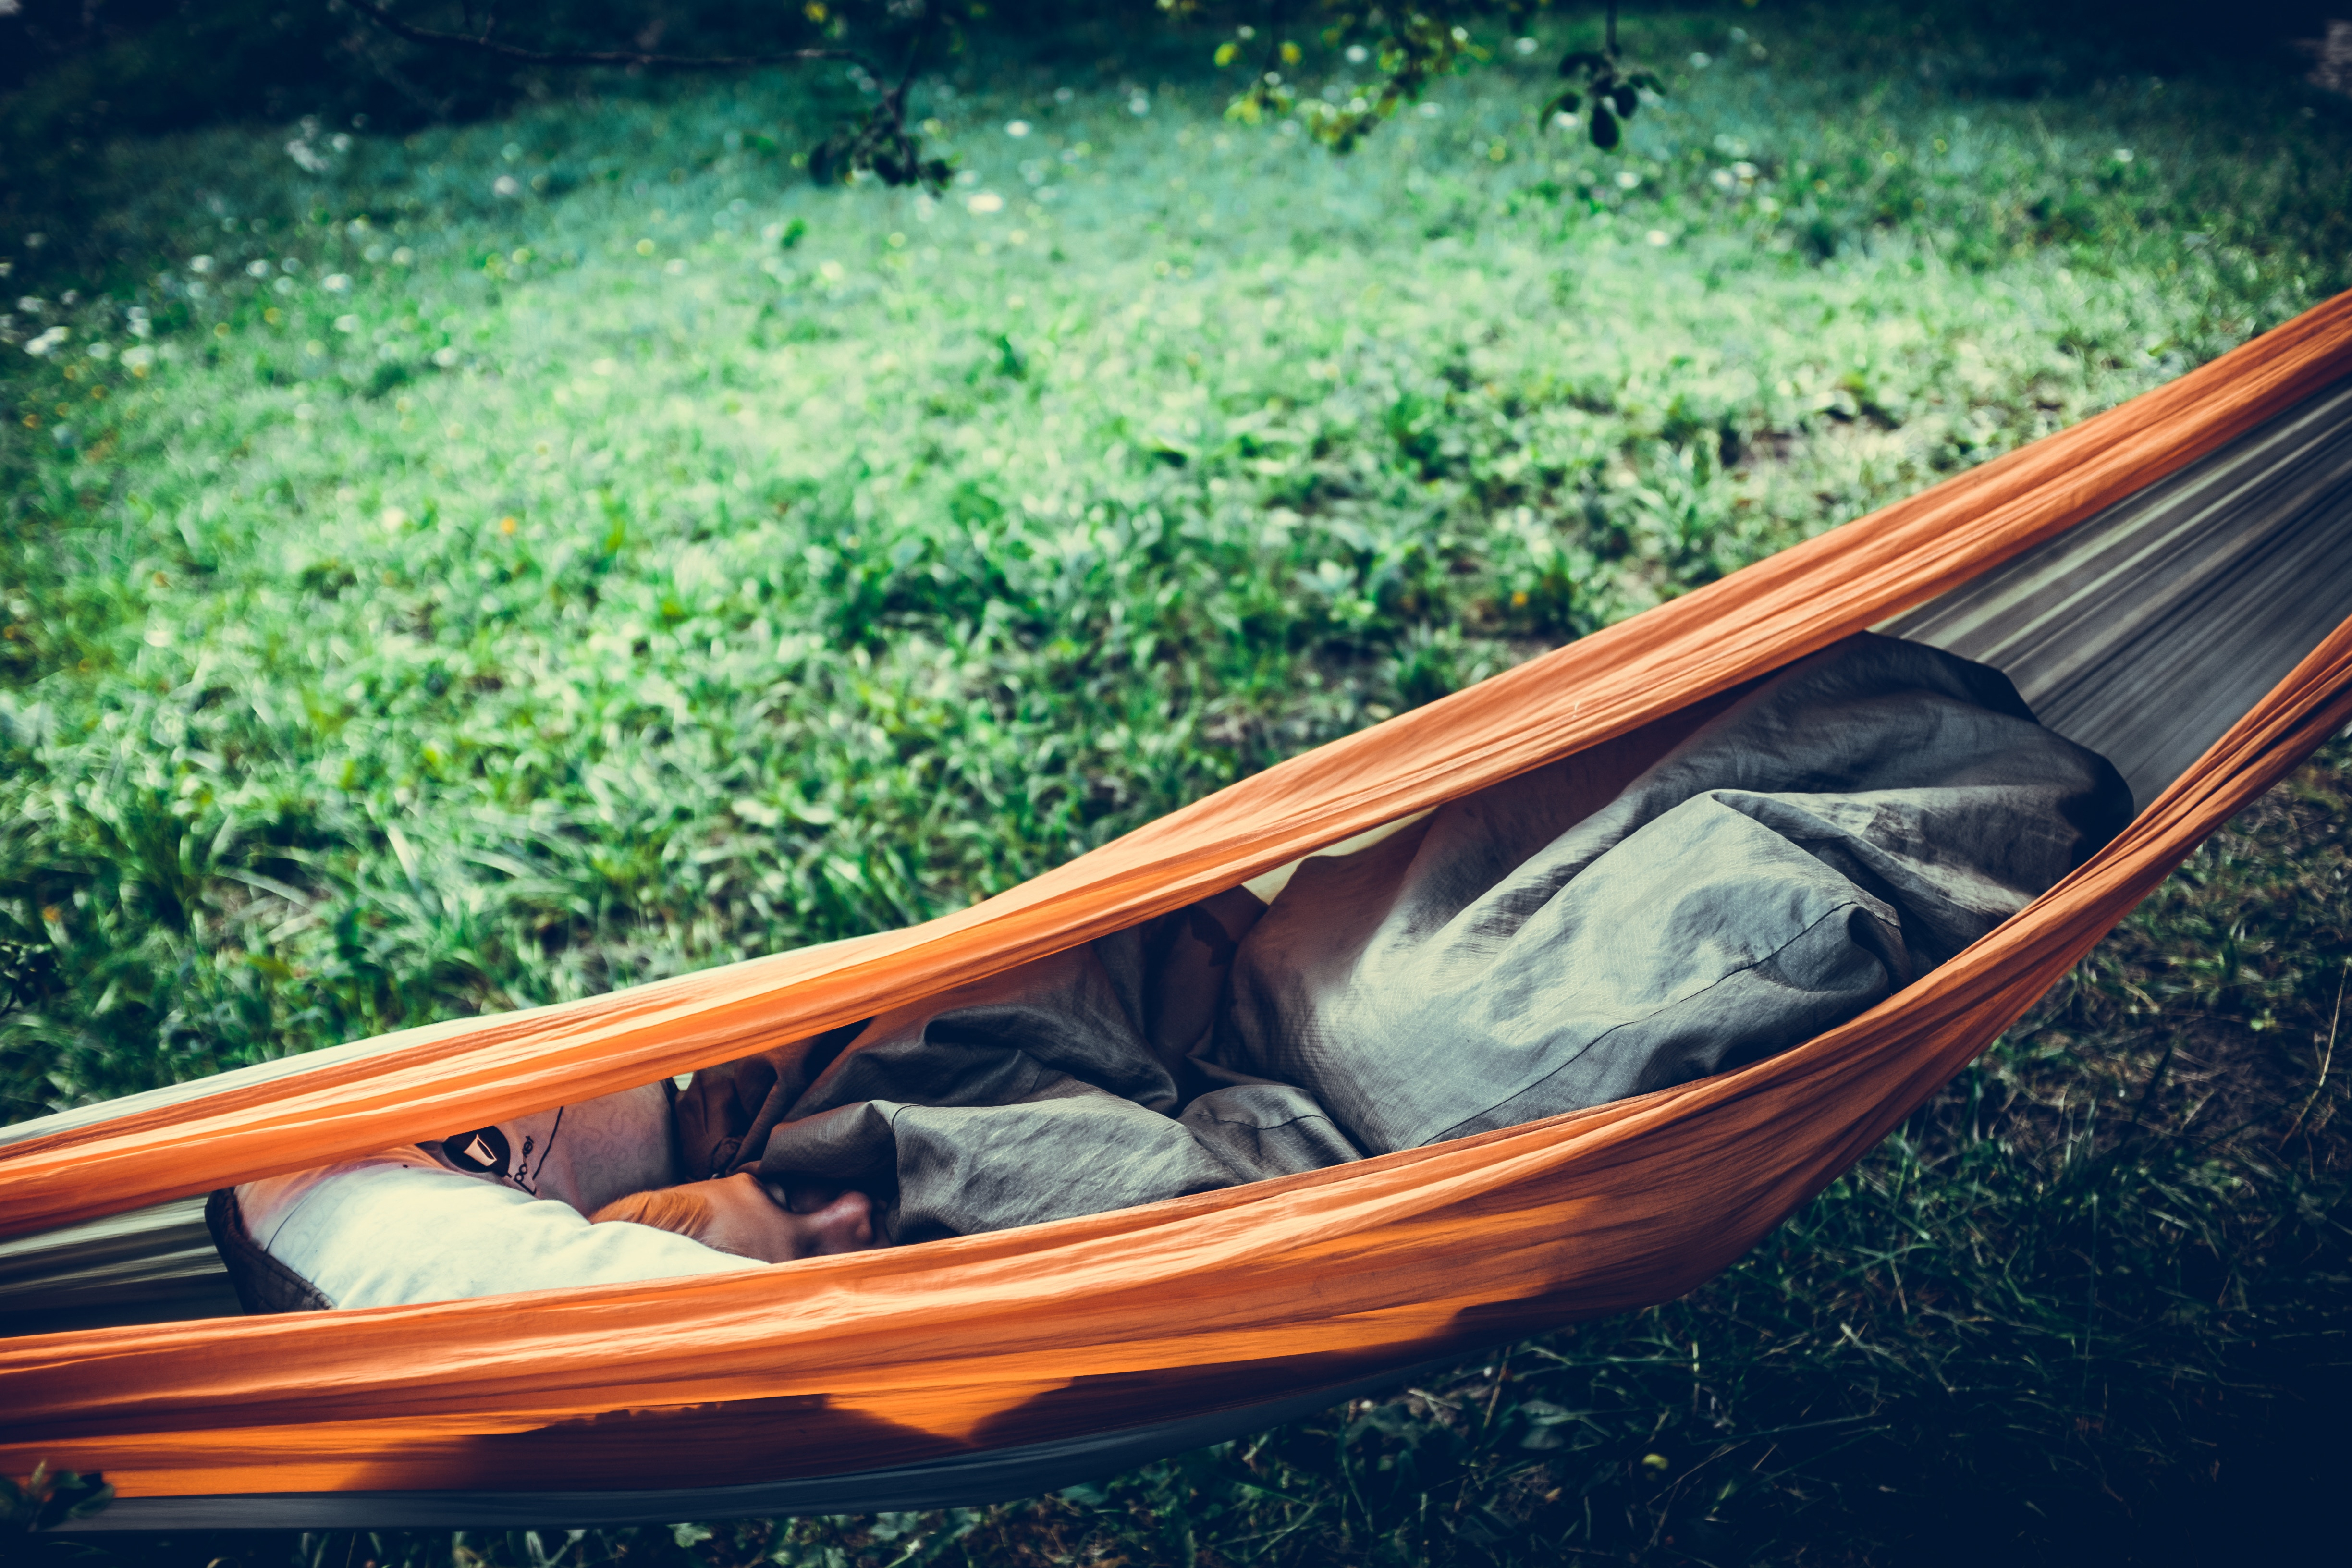 The Essential Guide to Hammocks Featured image